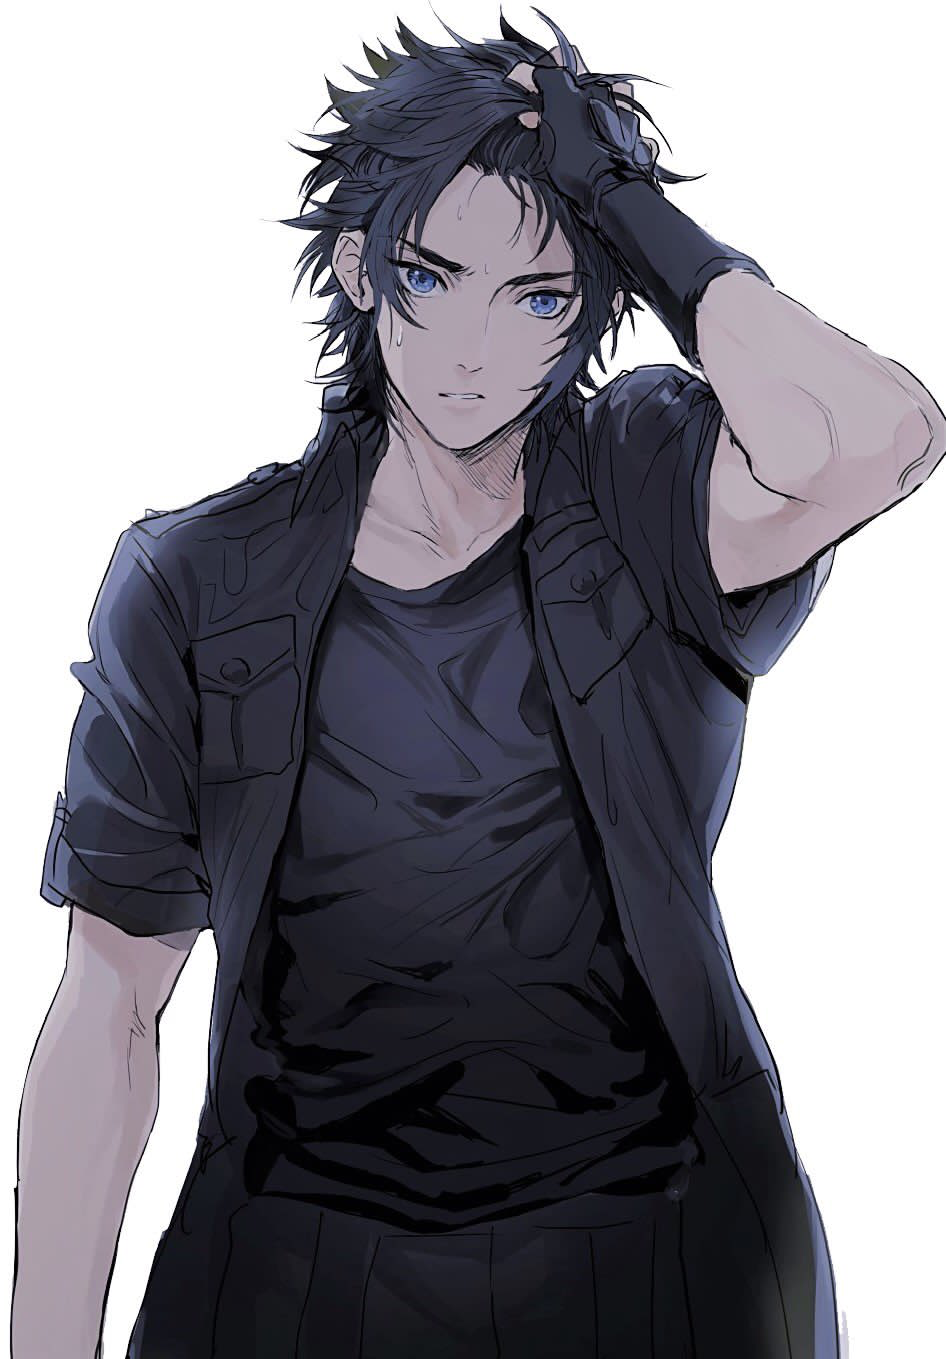 Anime Characters 150cm : Noctis from final fantasy male characters pinterest